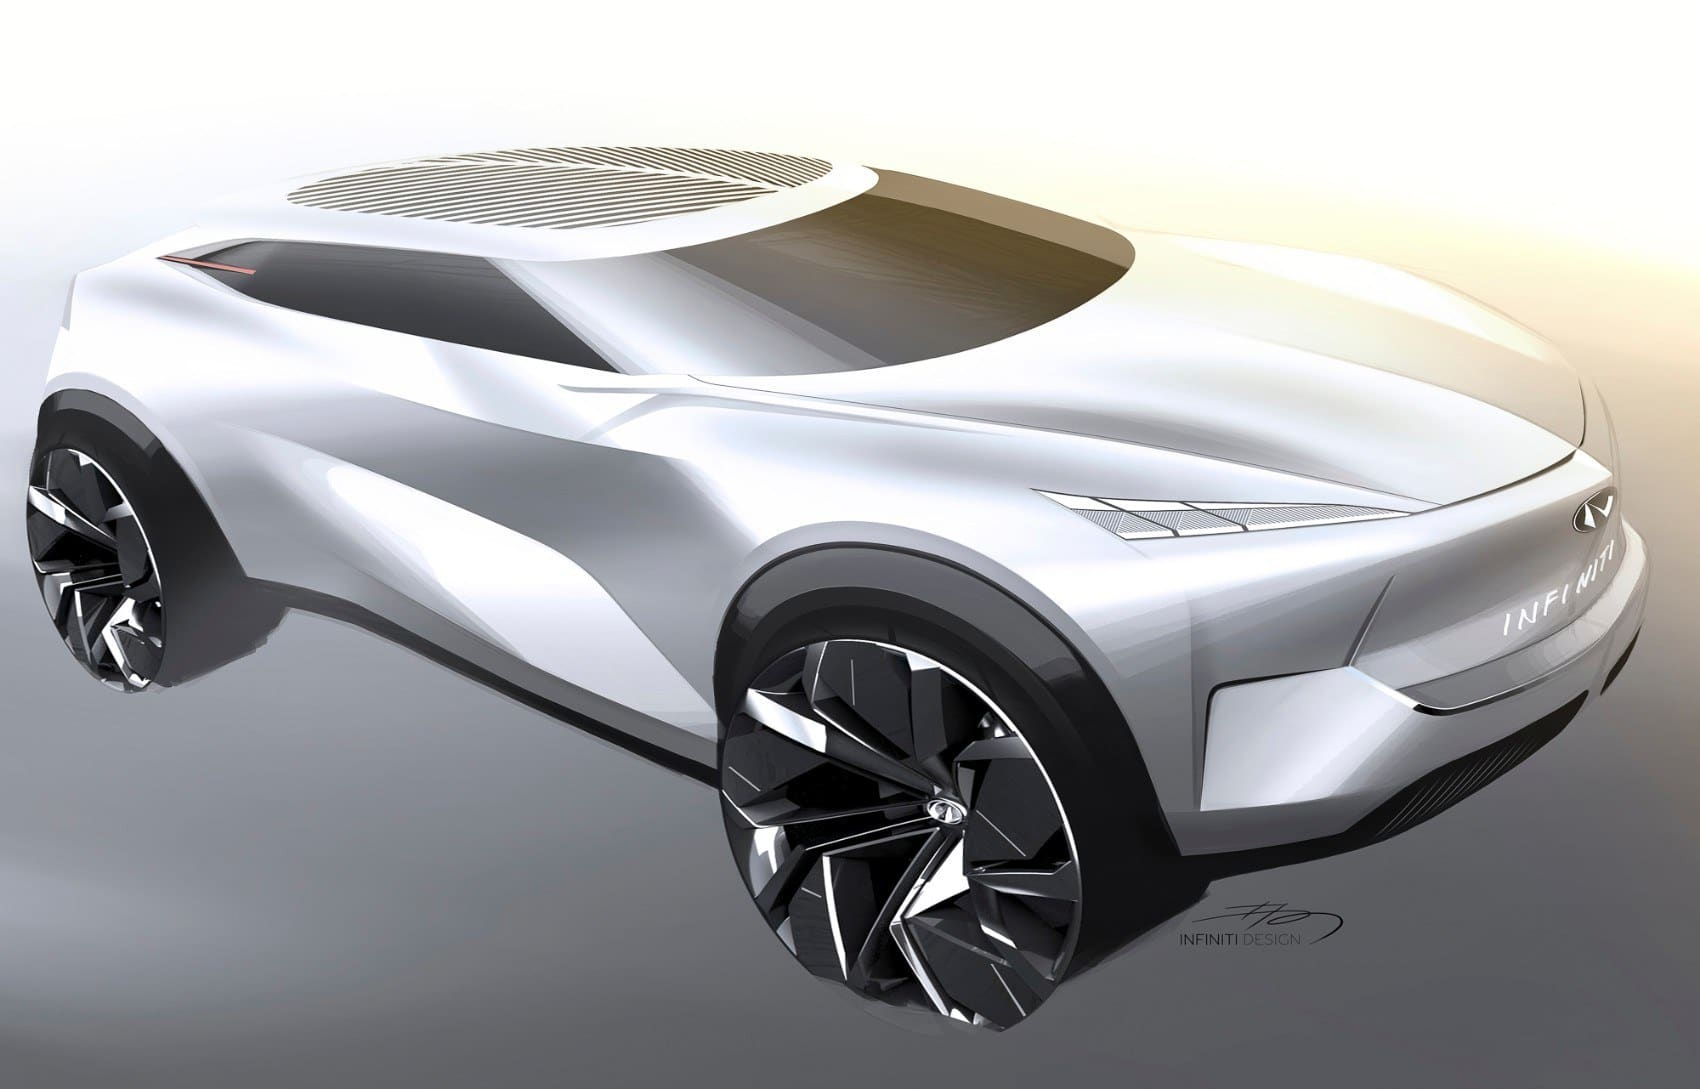 Infiniti Qx Inspiration The Potential Of Empty Spaces